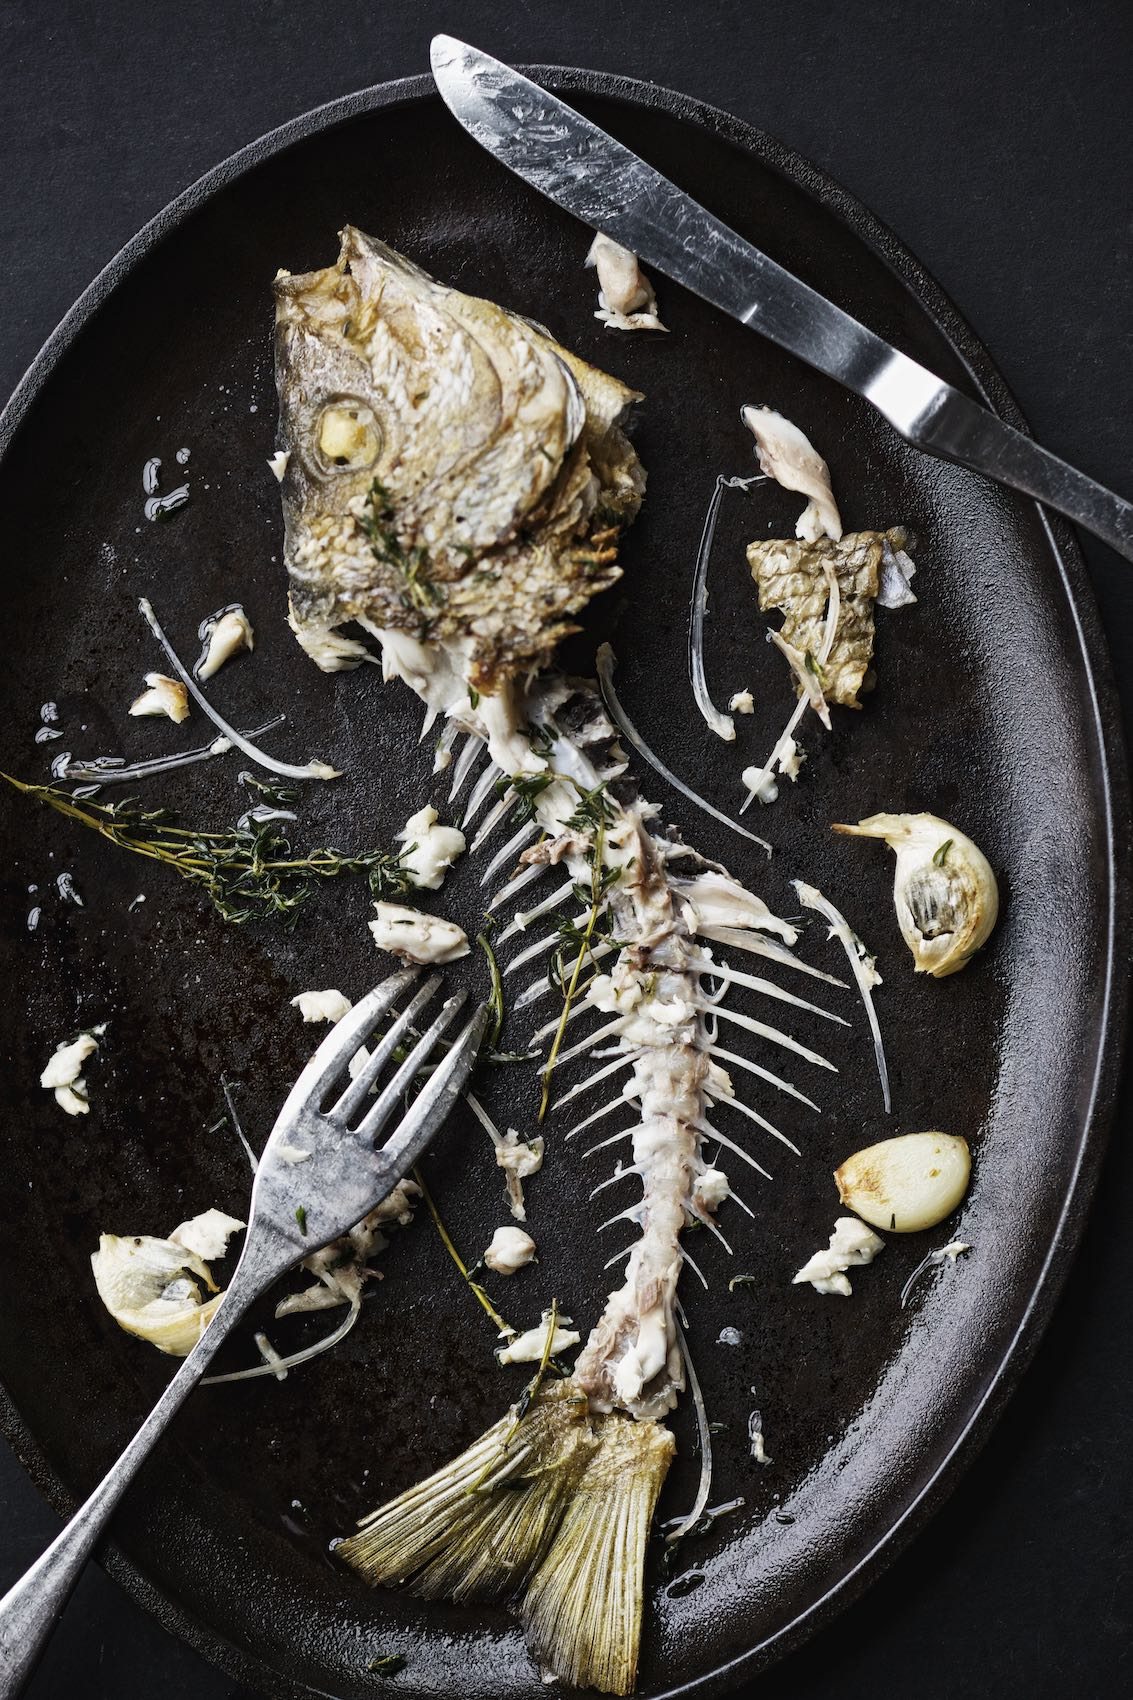 Jody Horton Photography - Remnants of a whole, cooked fish on a black skillet.